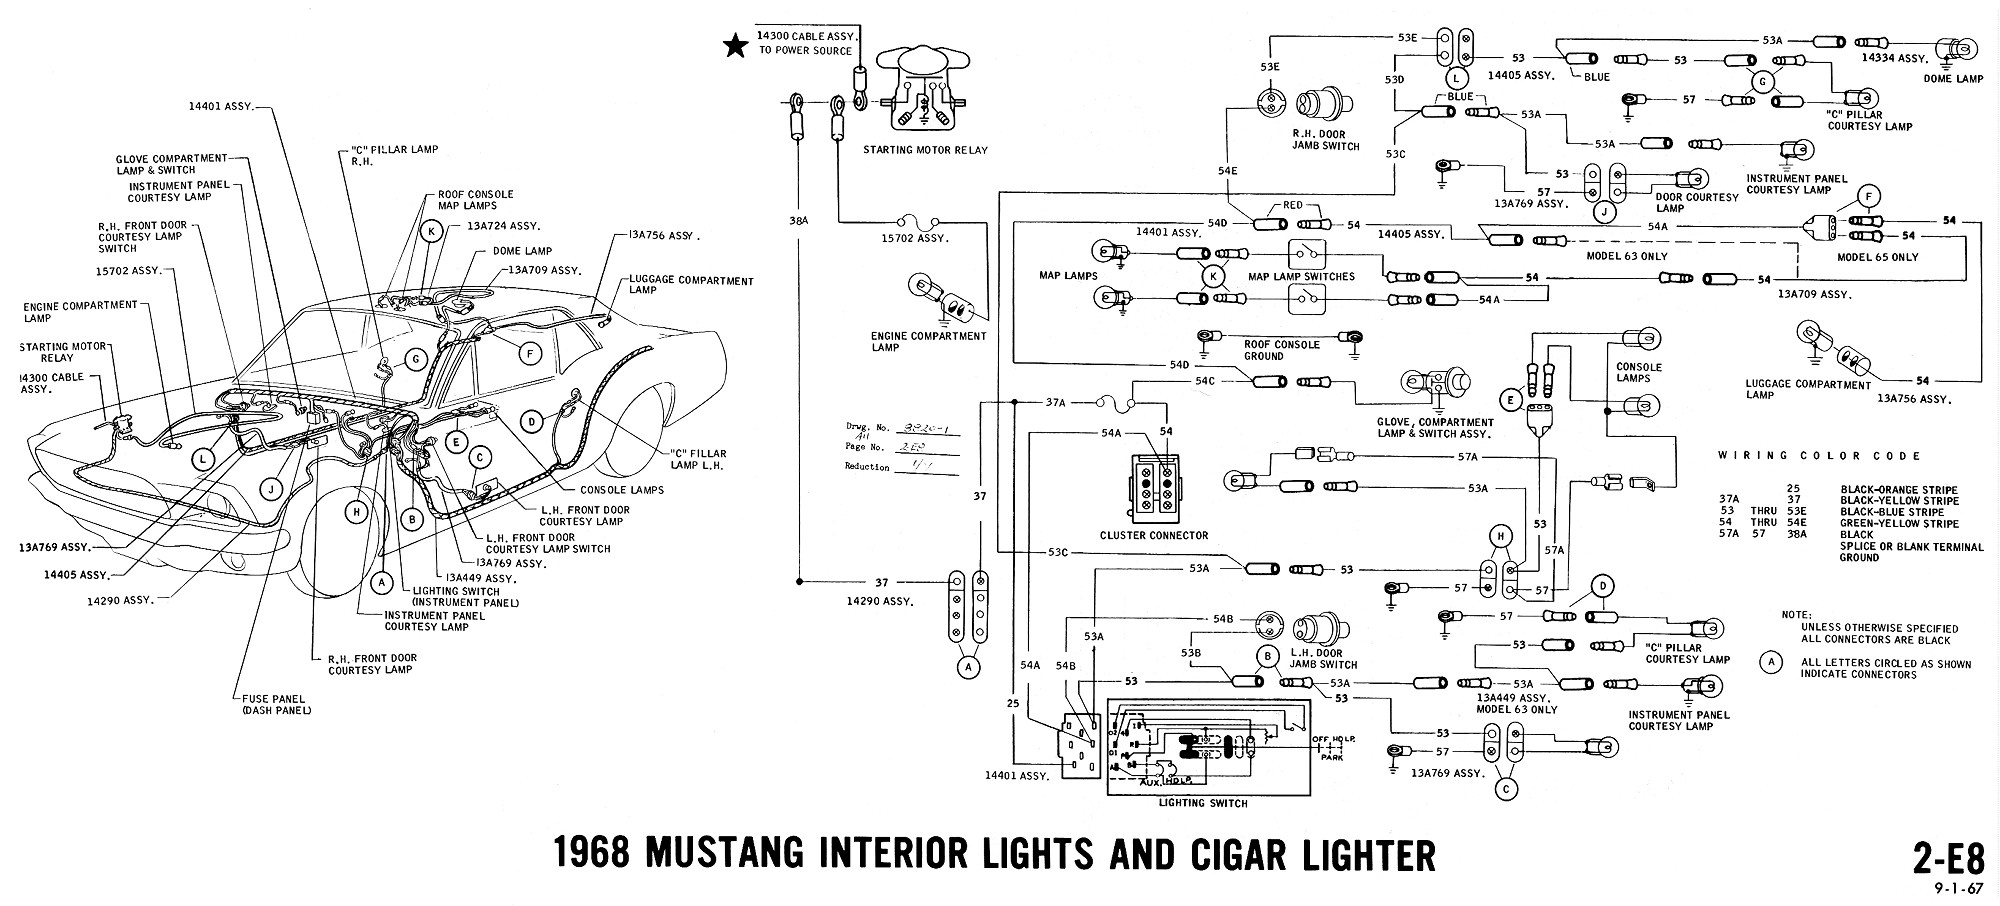 1968 mustang wiring diagram interior lights cigar lighter 1968 mustang wiring diagrams and vacuum schematics average joe 1968 ford mustang wiring diagram at bayanpartner.co